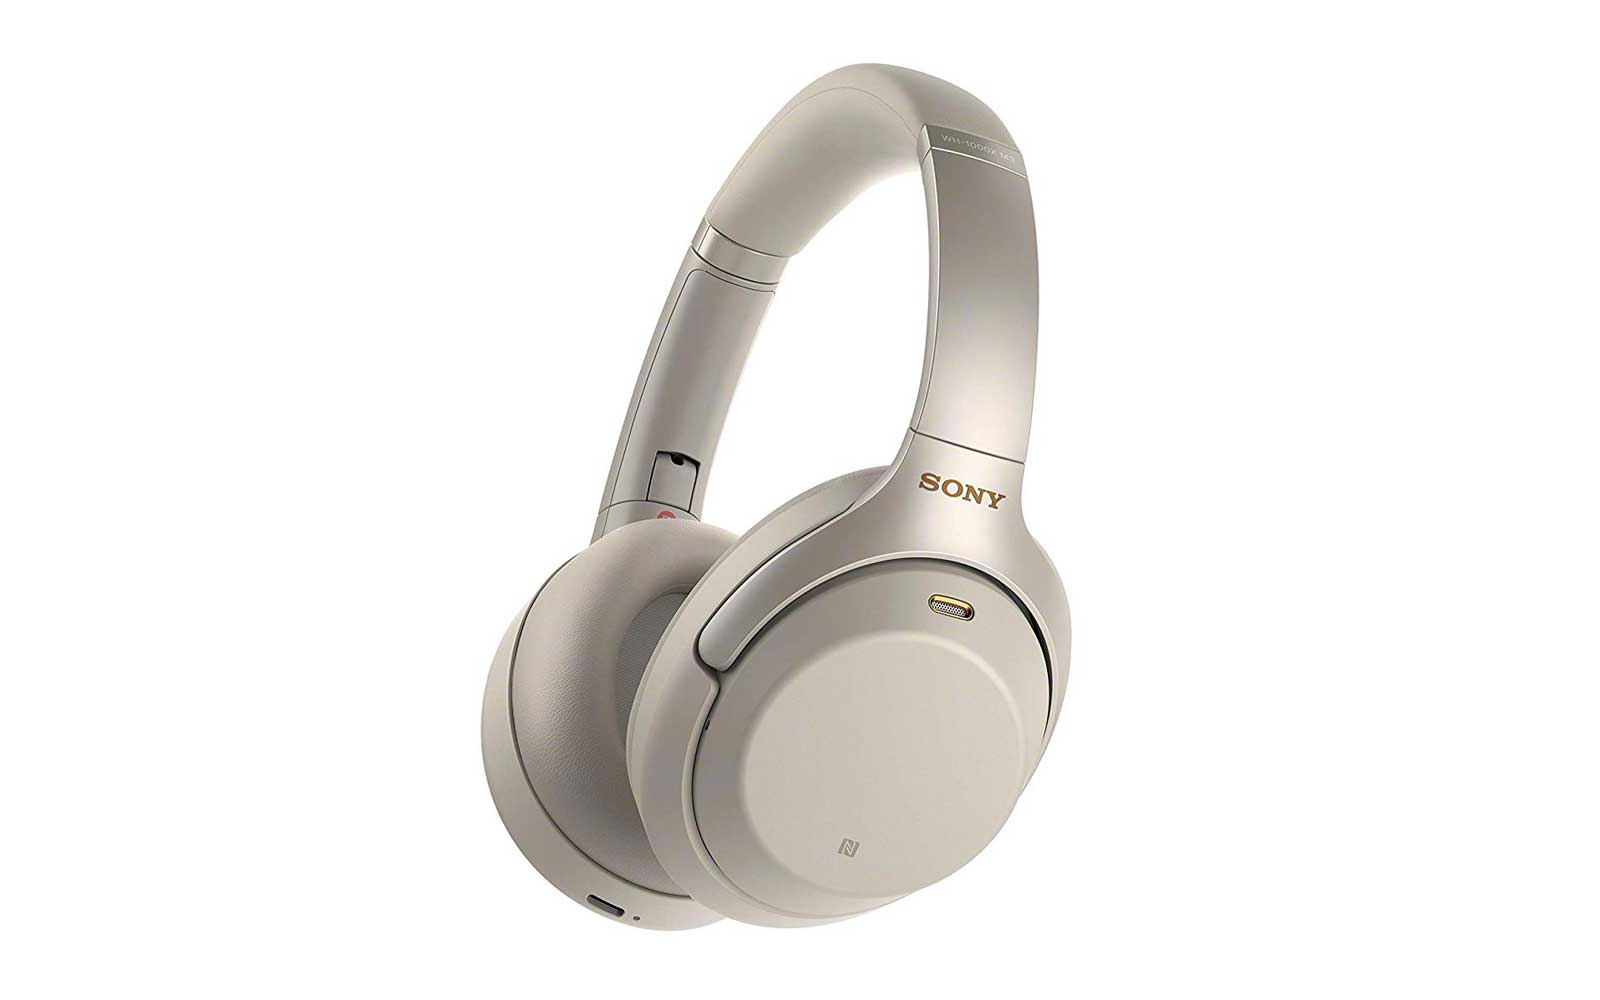 Gifts to get on Amazon Sony Wireless Noise-Canceling Over-Ear Headphones